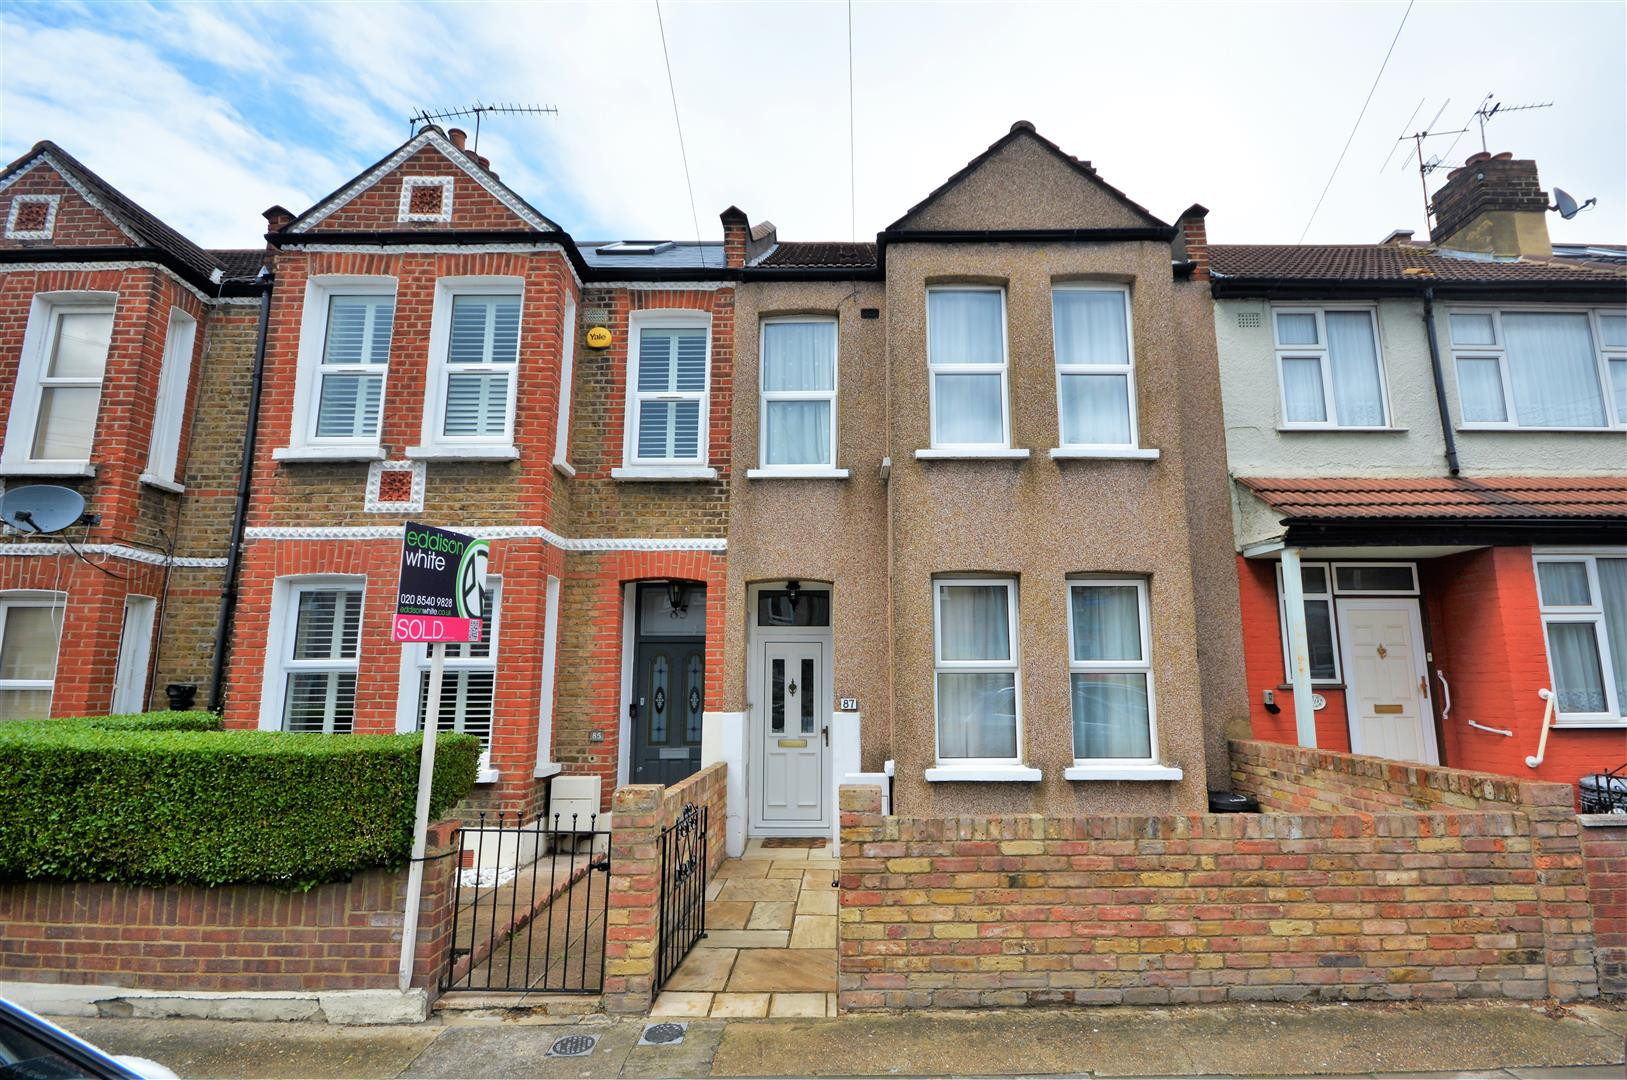 Fortescue Road, Colliers Wood